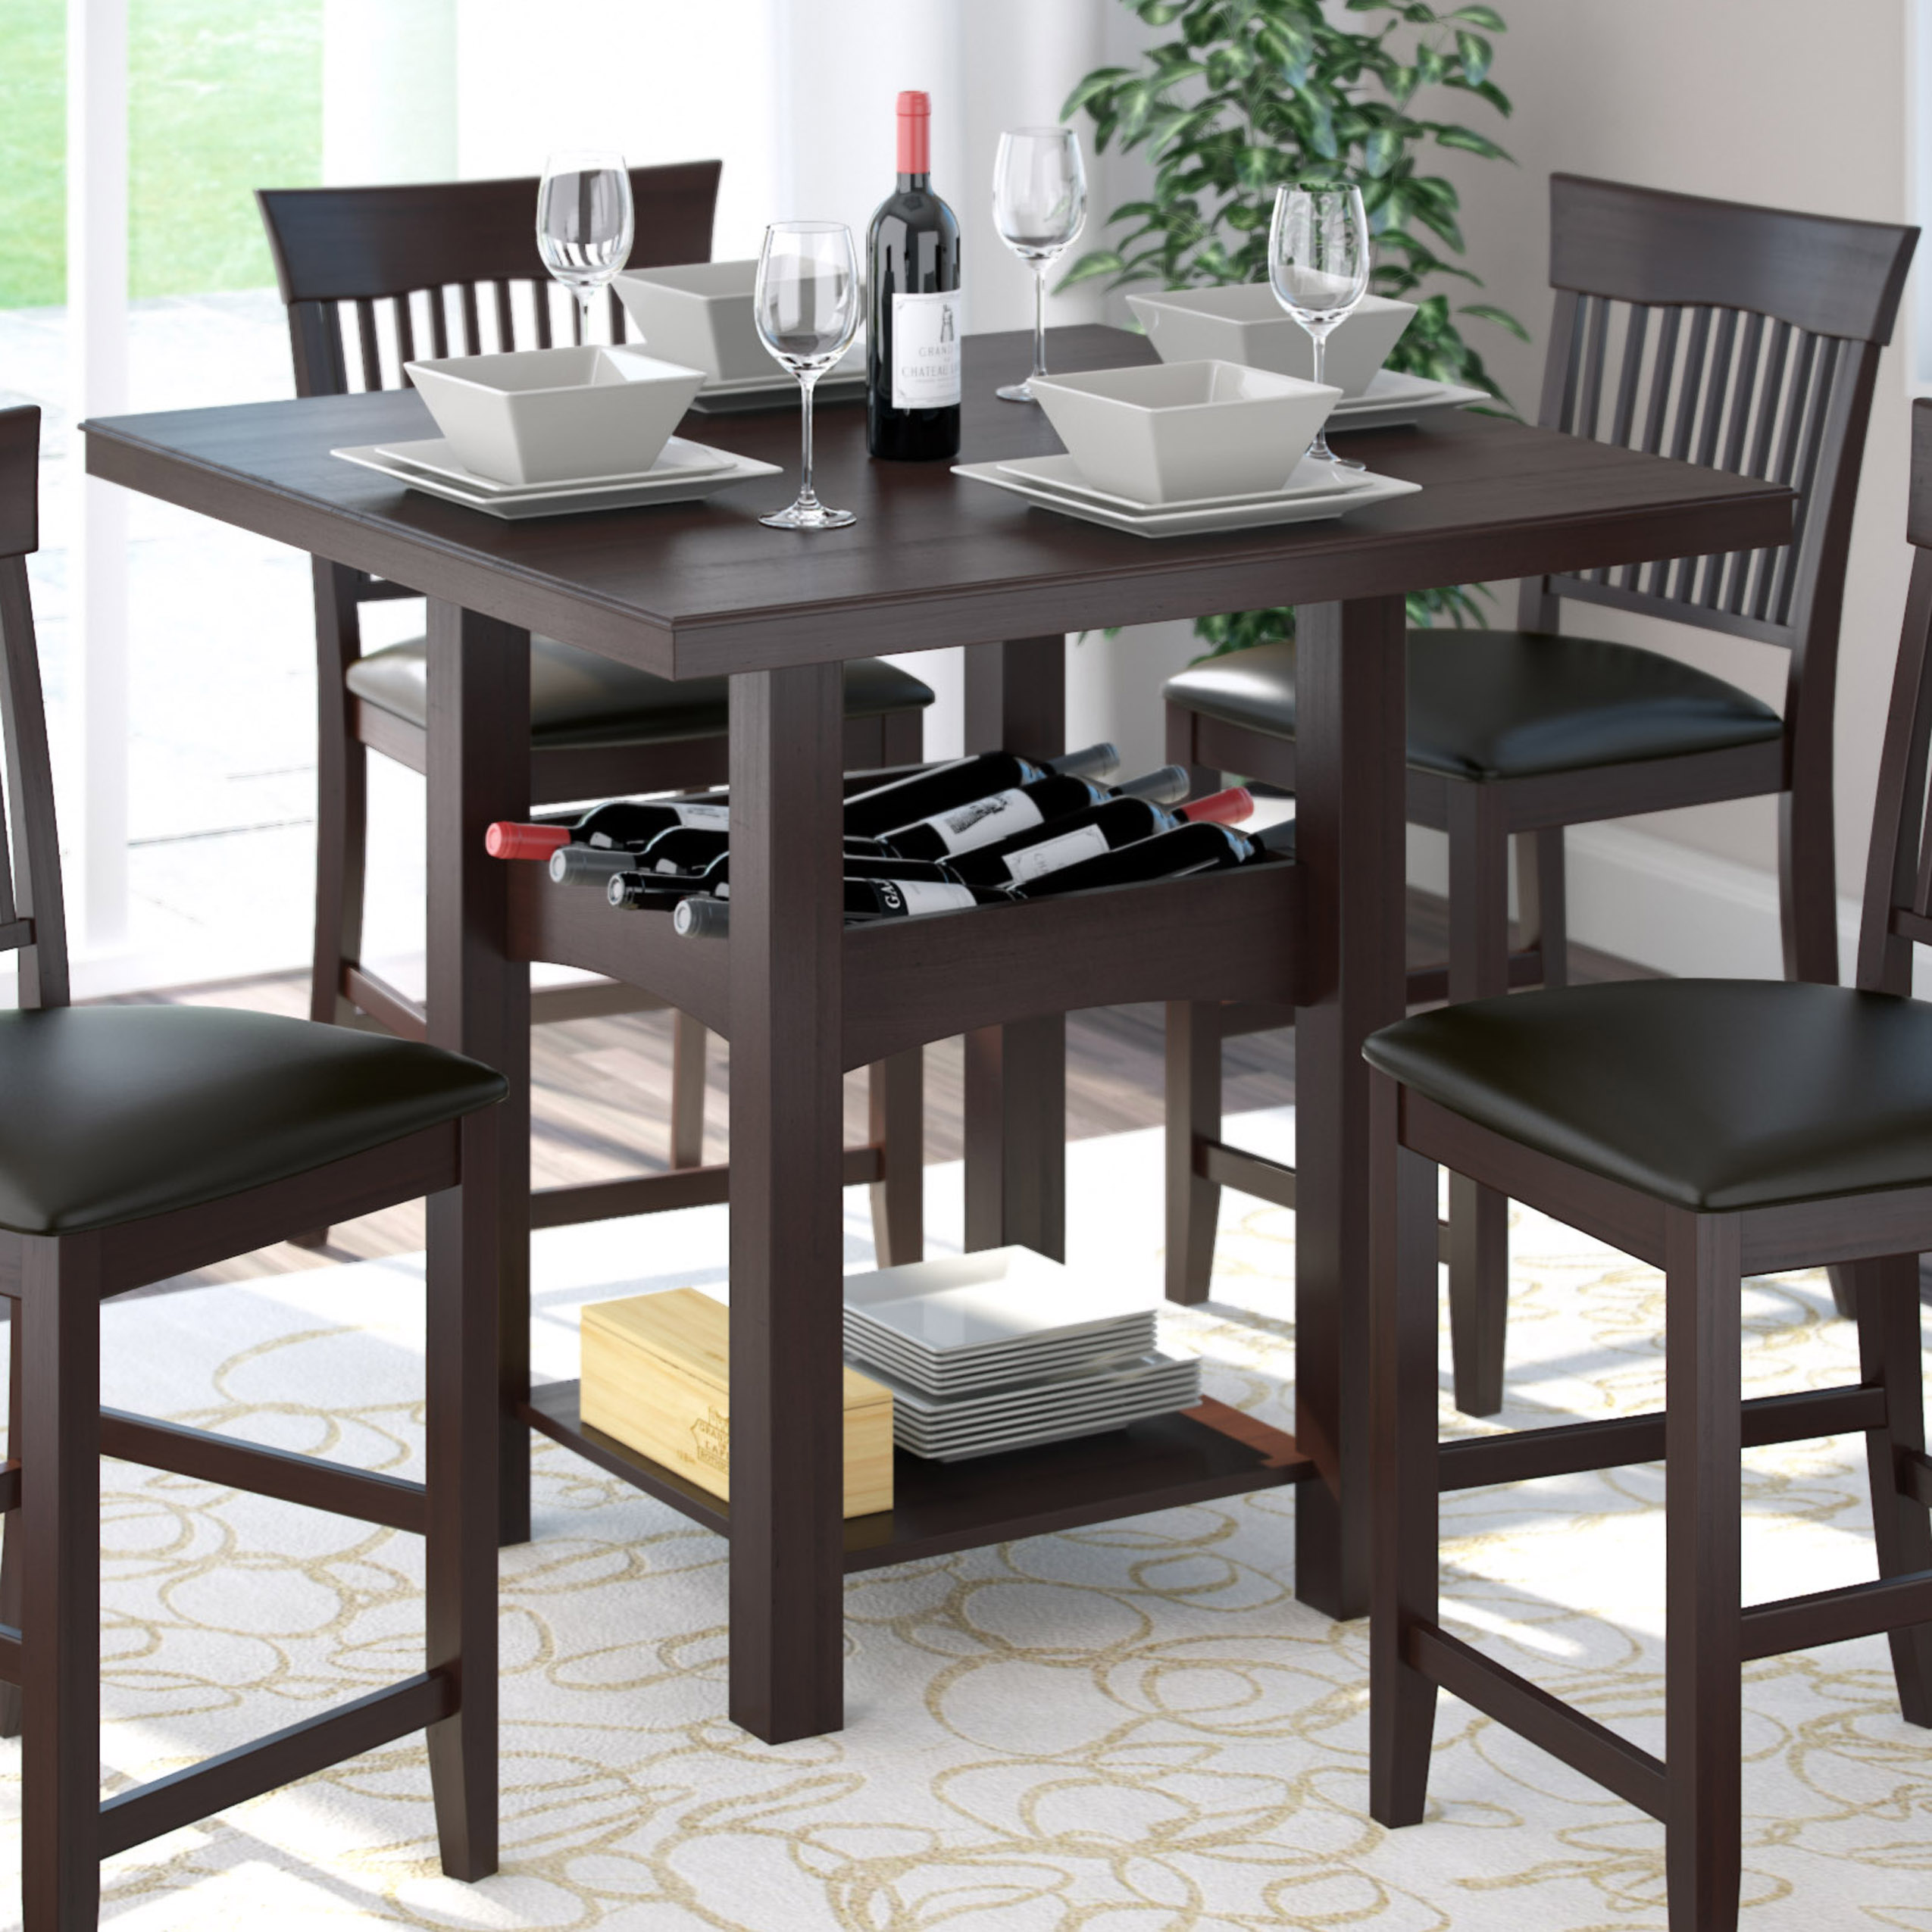 CorLiving Bistro 36 Counter Height Dark Cocoa Dining Table With Wine Rack Home Furniture